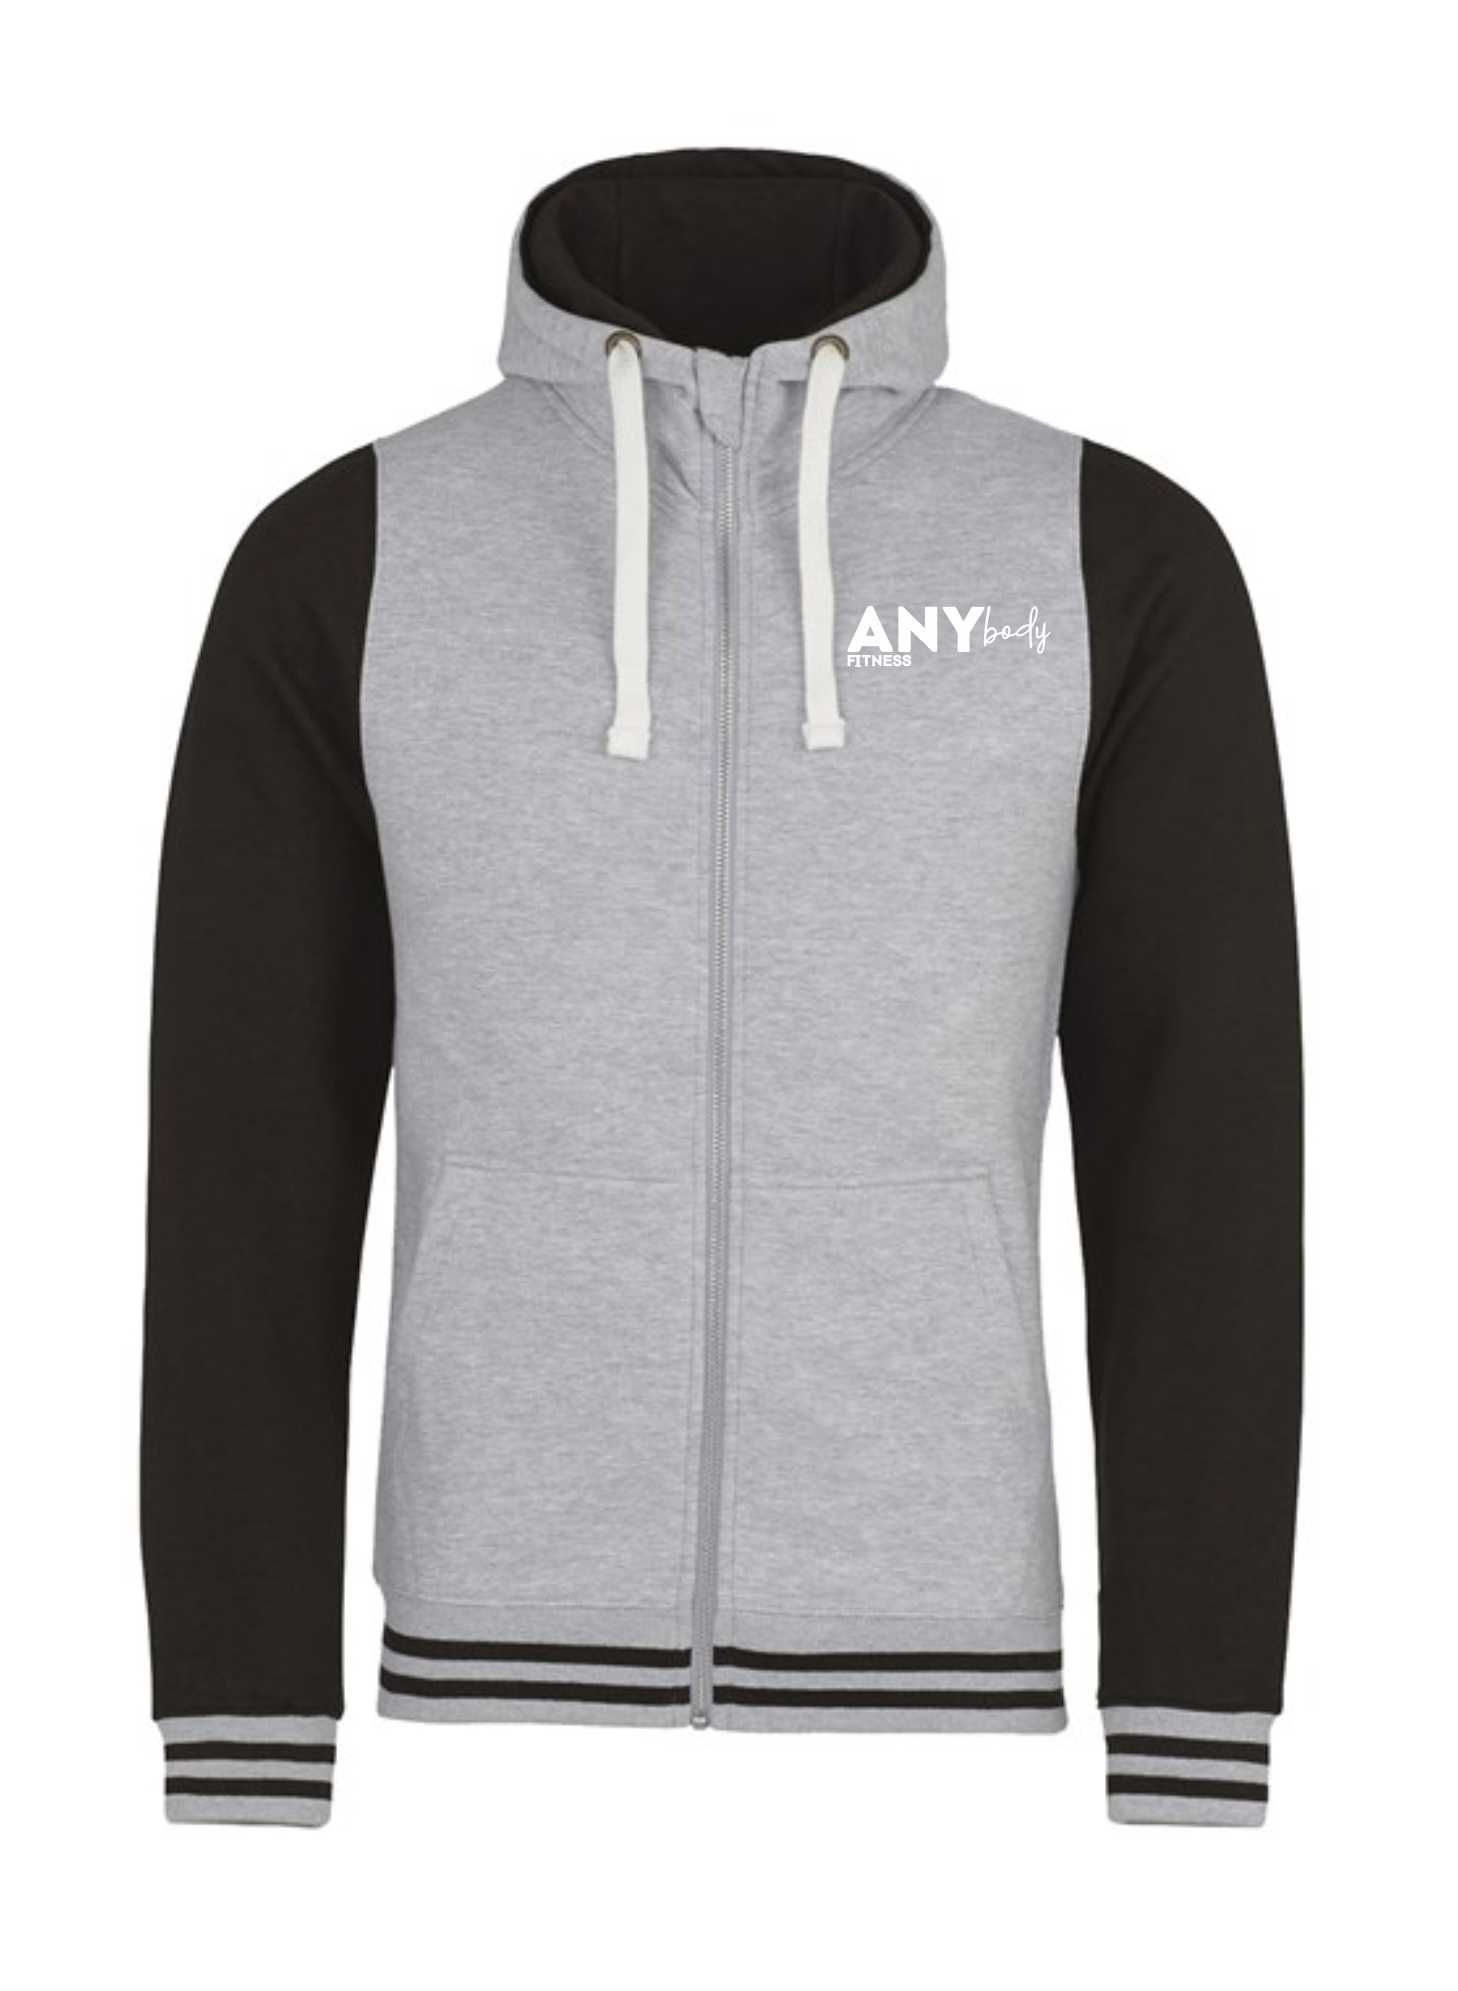 ANYbody Fitness- Urban Varsity Hoodie